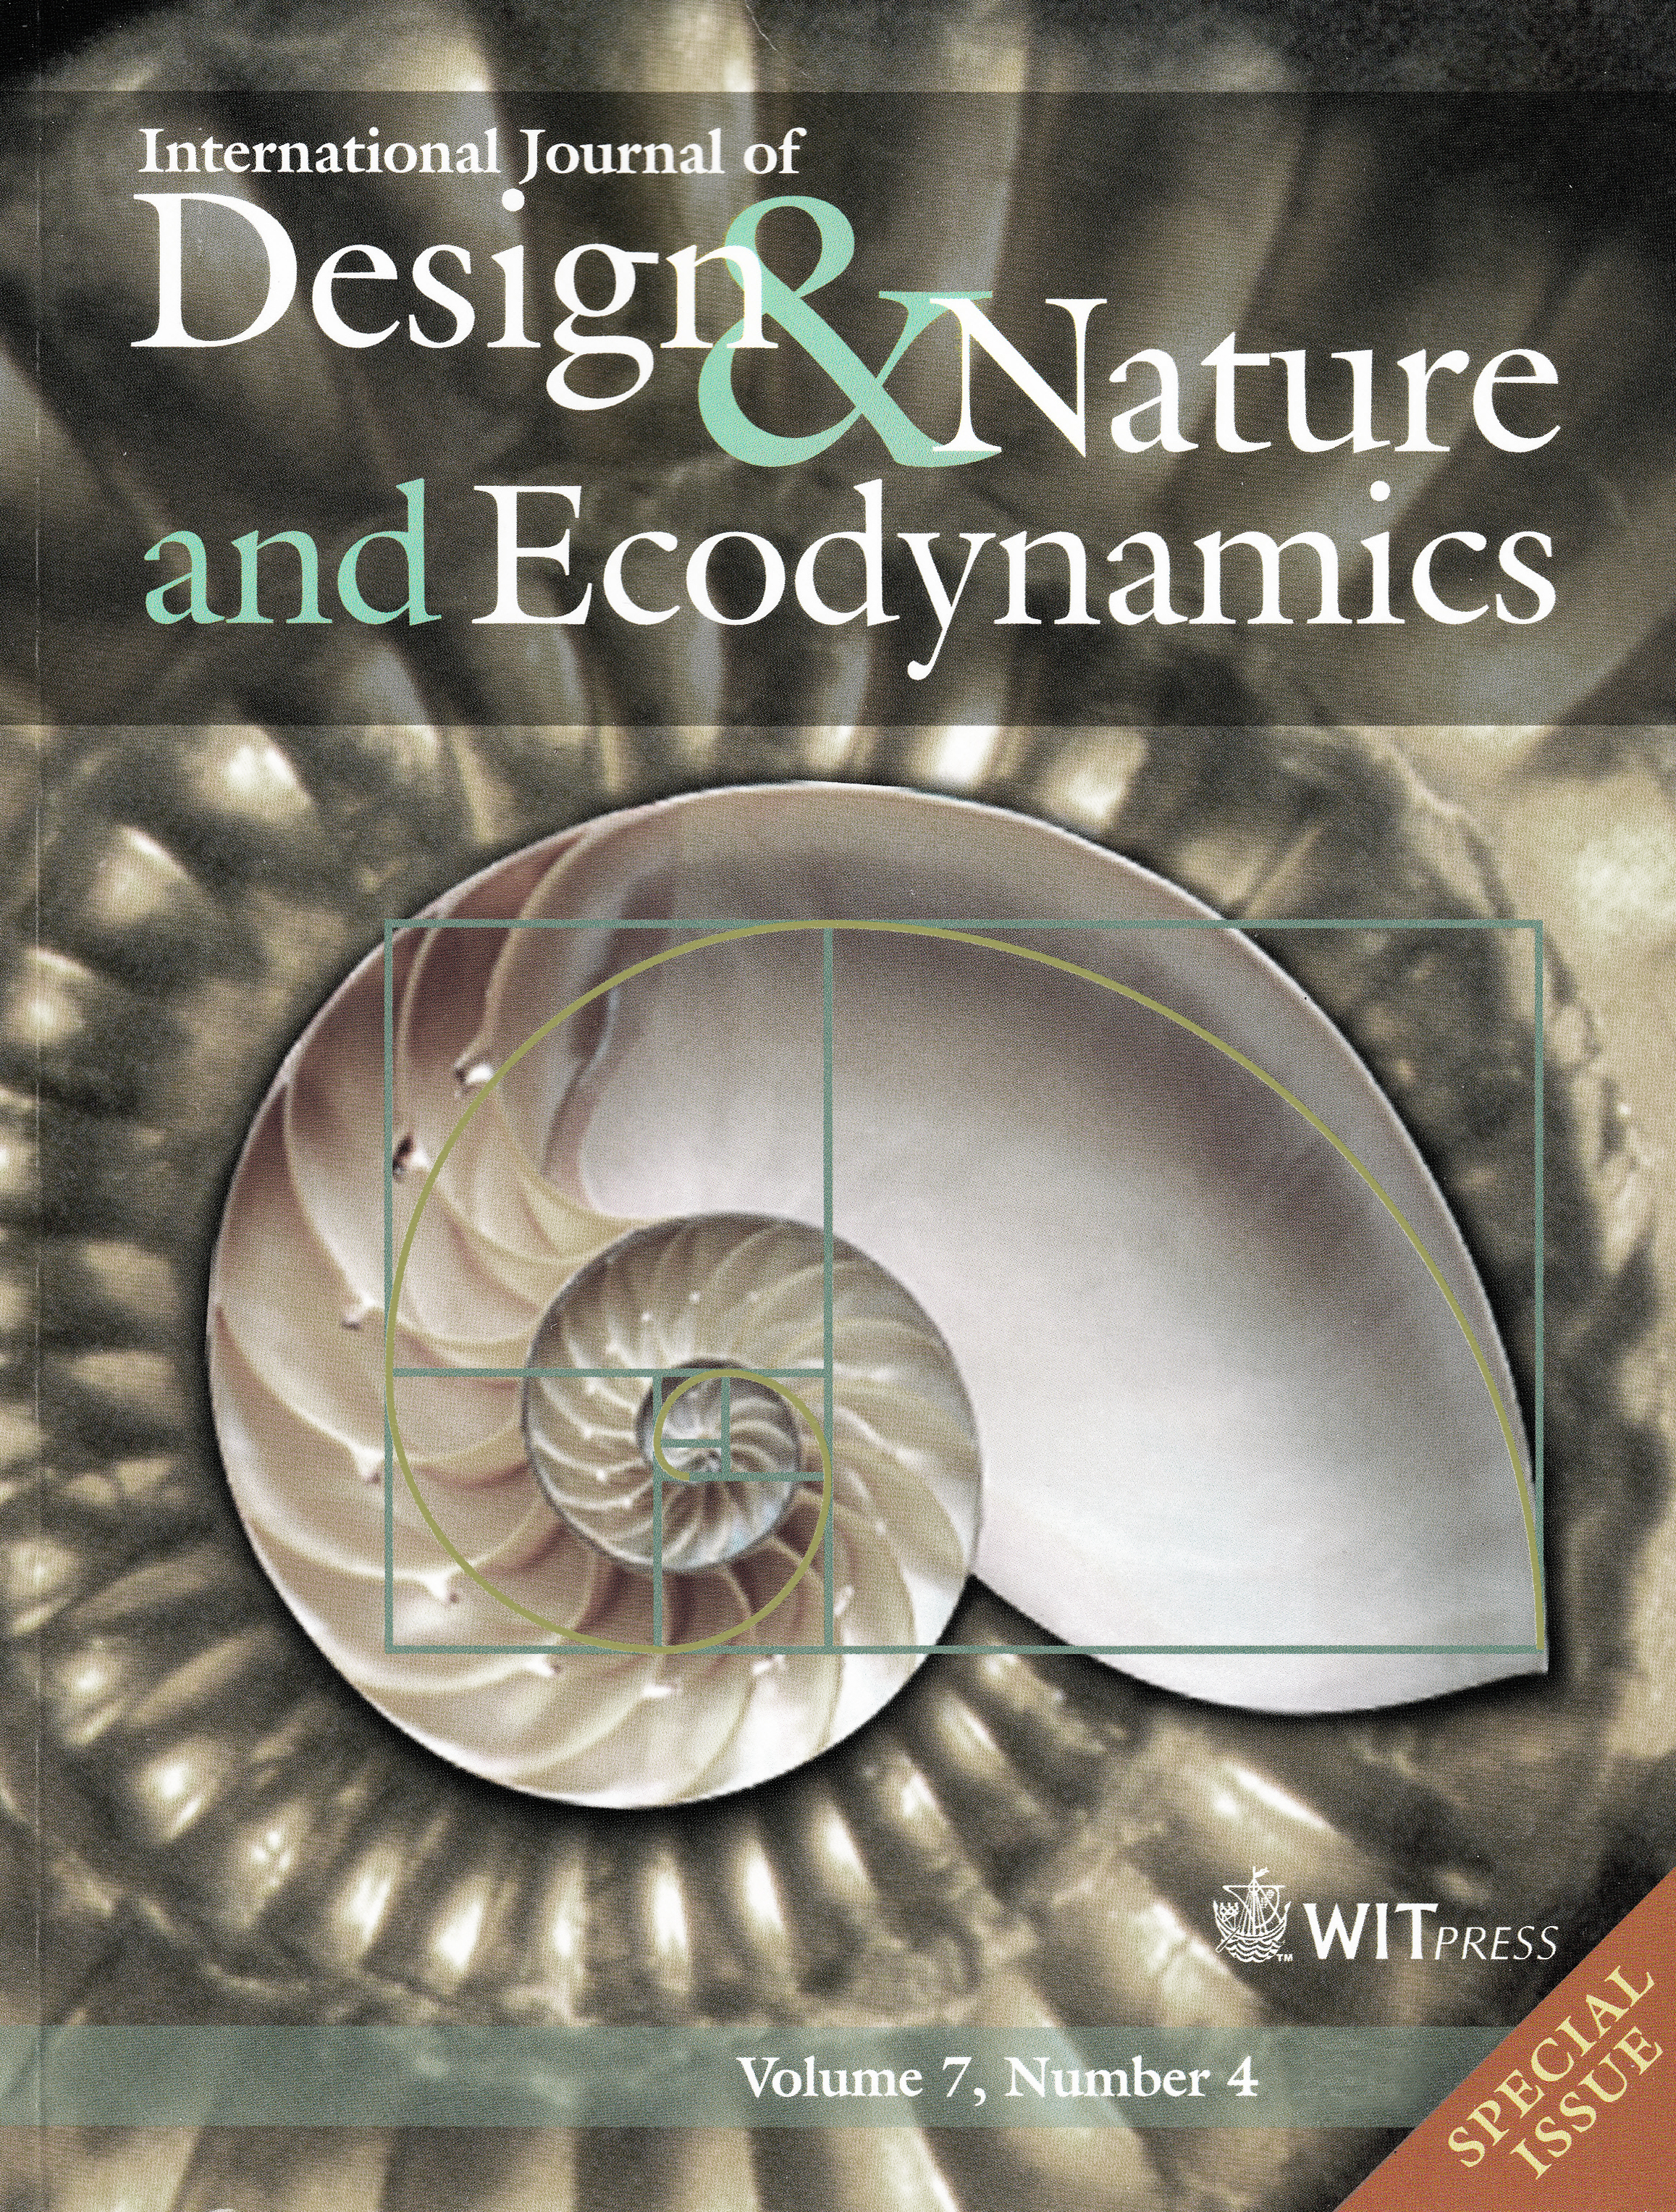 2013_0805 Matt Fajkus MF Architecture Design Nature Ecodynamics Cover.jpg